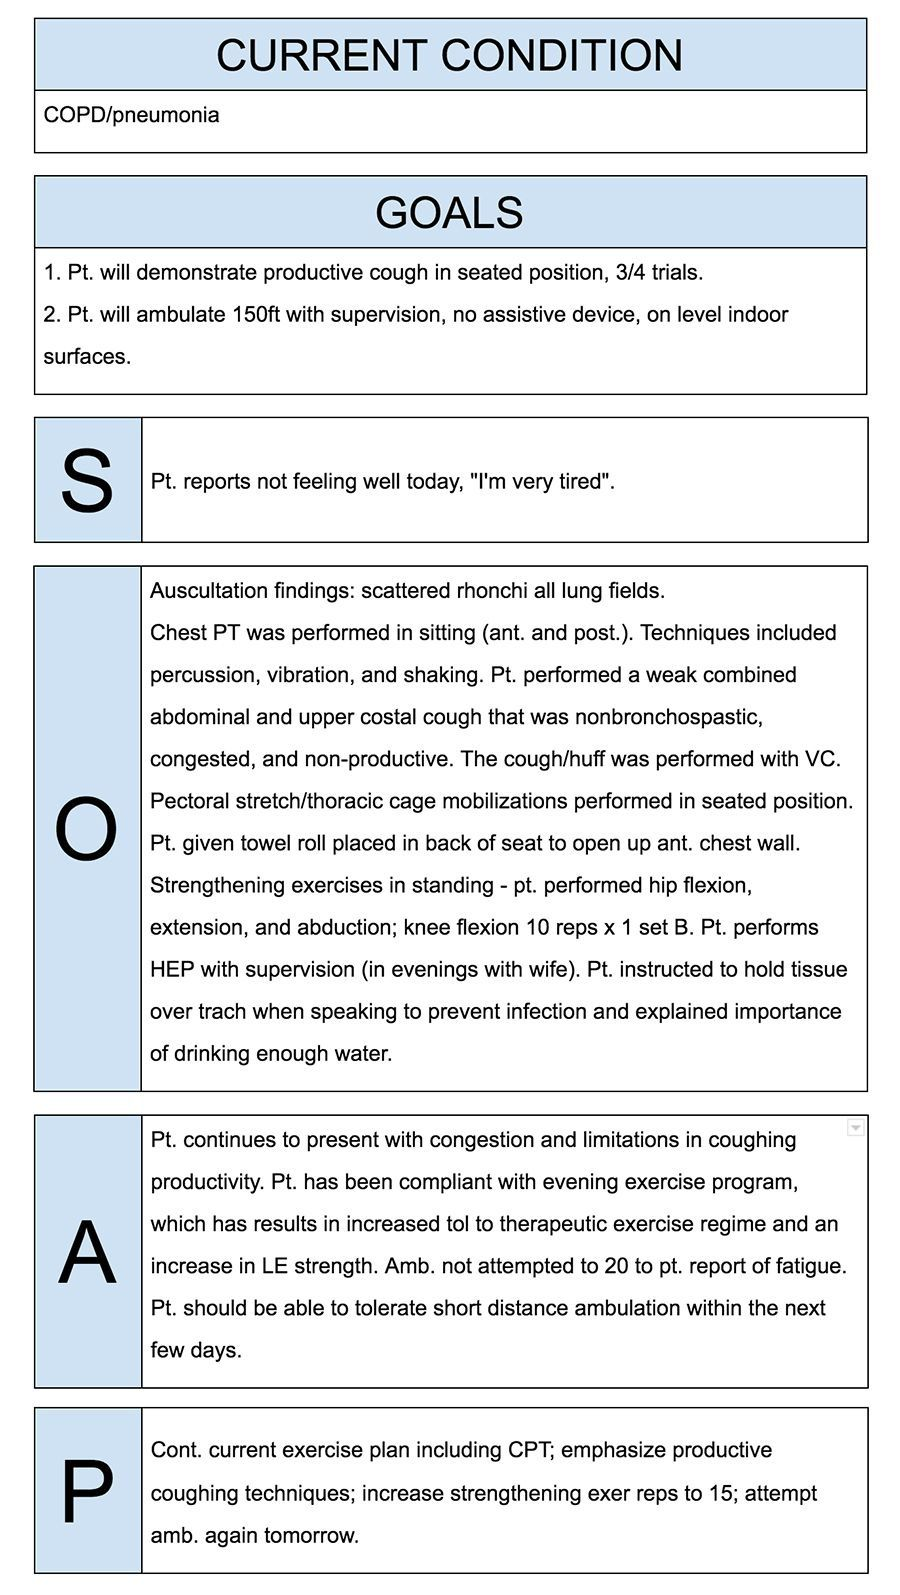 003 Unforgettable Soap Note Template Pdf Image  Massage Free ChiropracticFull